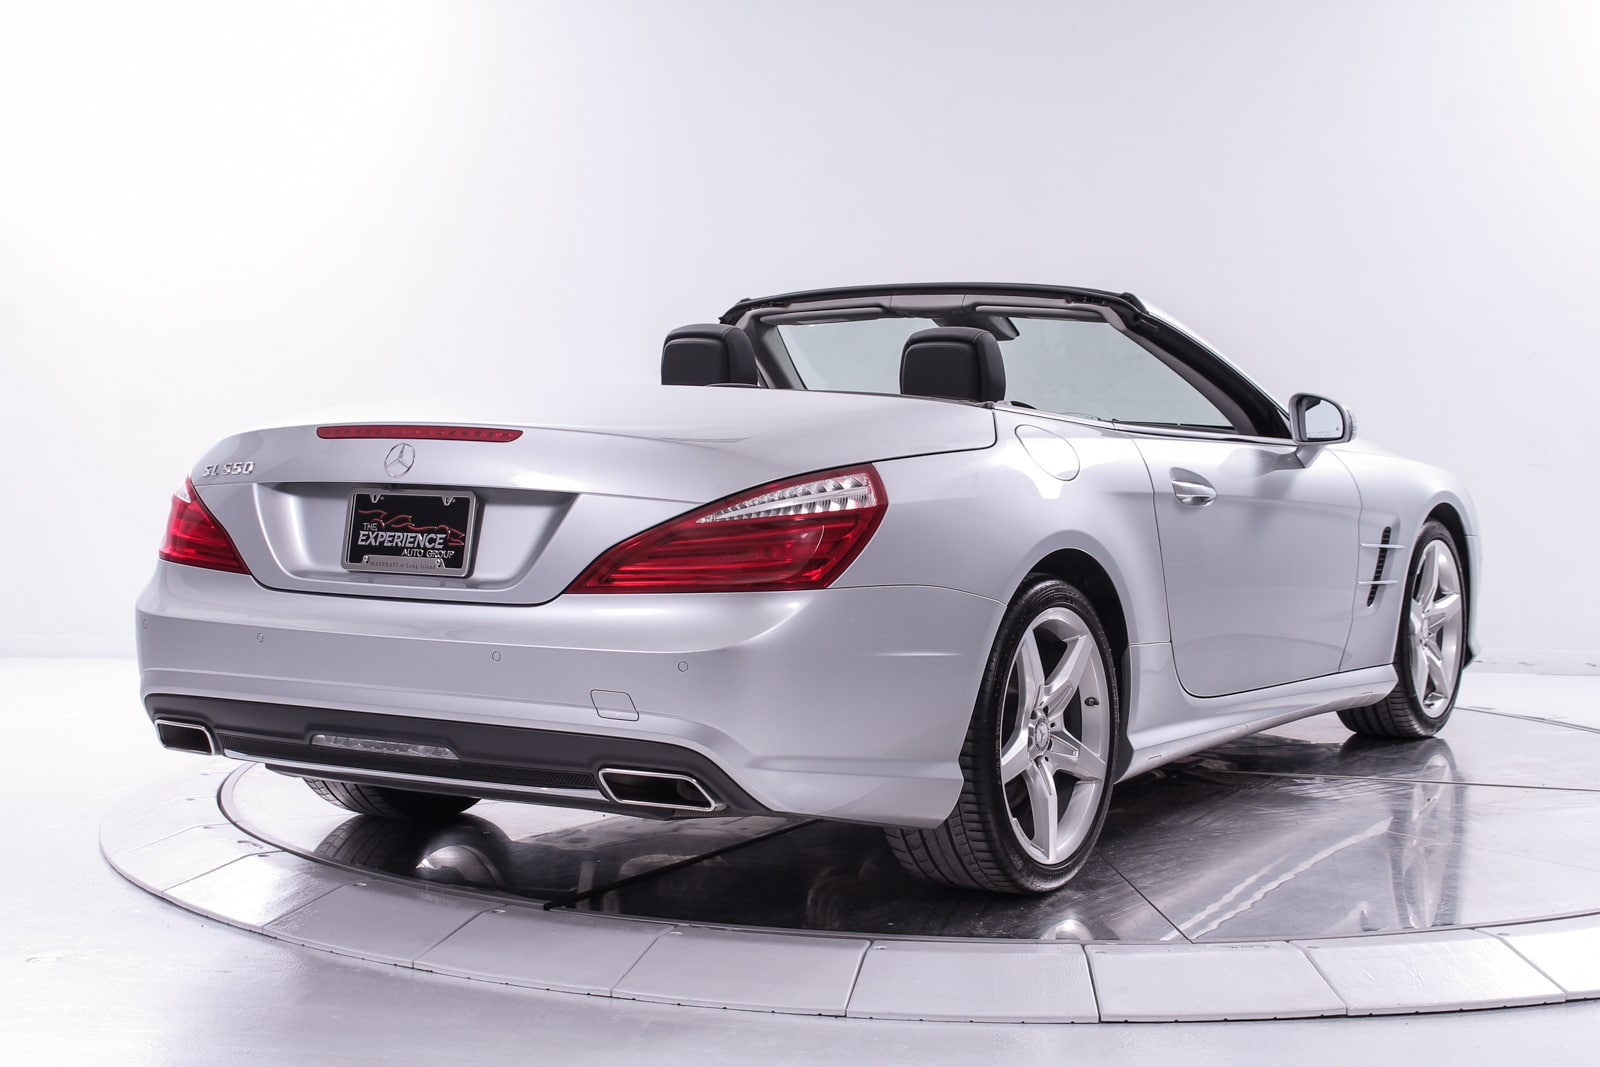 Used 2013 mercedes benz sl550 in silver for sale in nyc for 2013 mercedes benz sl550 for sale